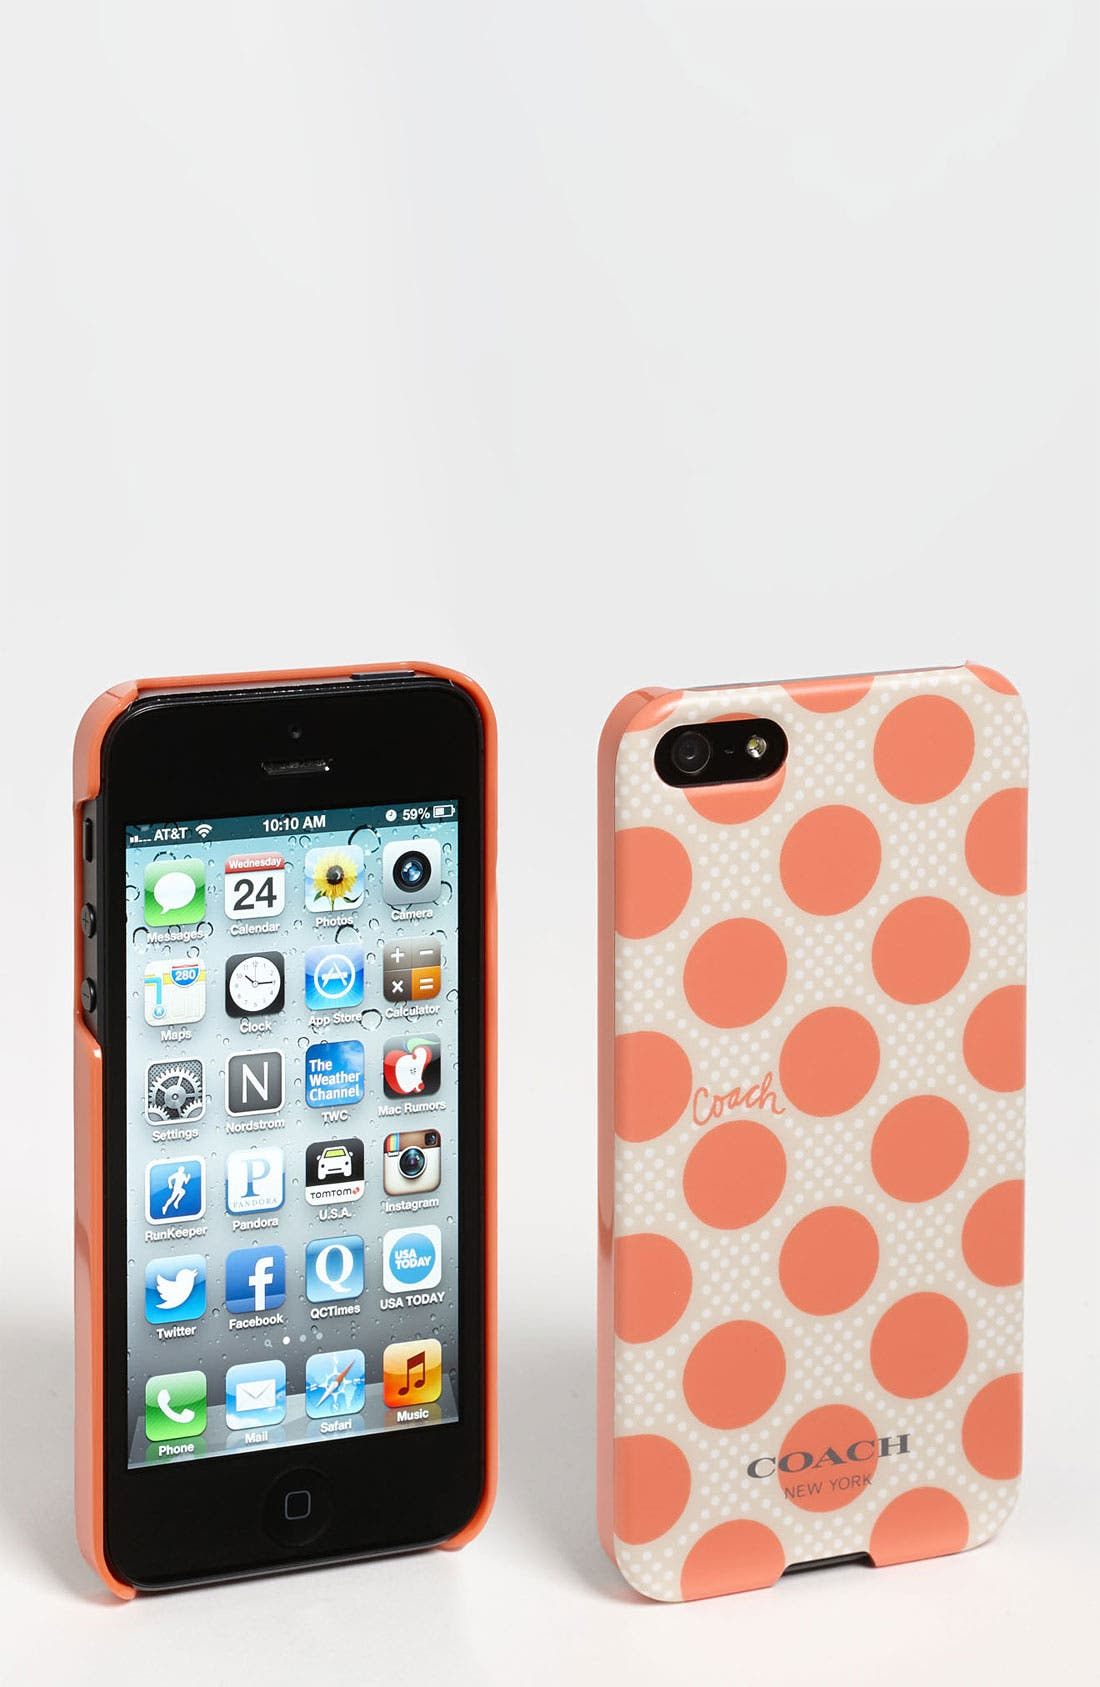 Main Image - COACH 'Polka Dot' iPhone 5 Case